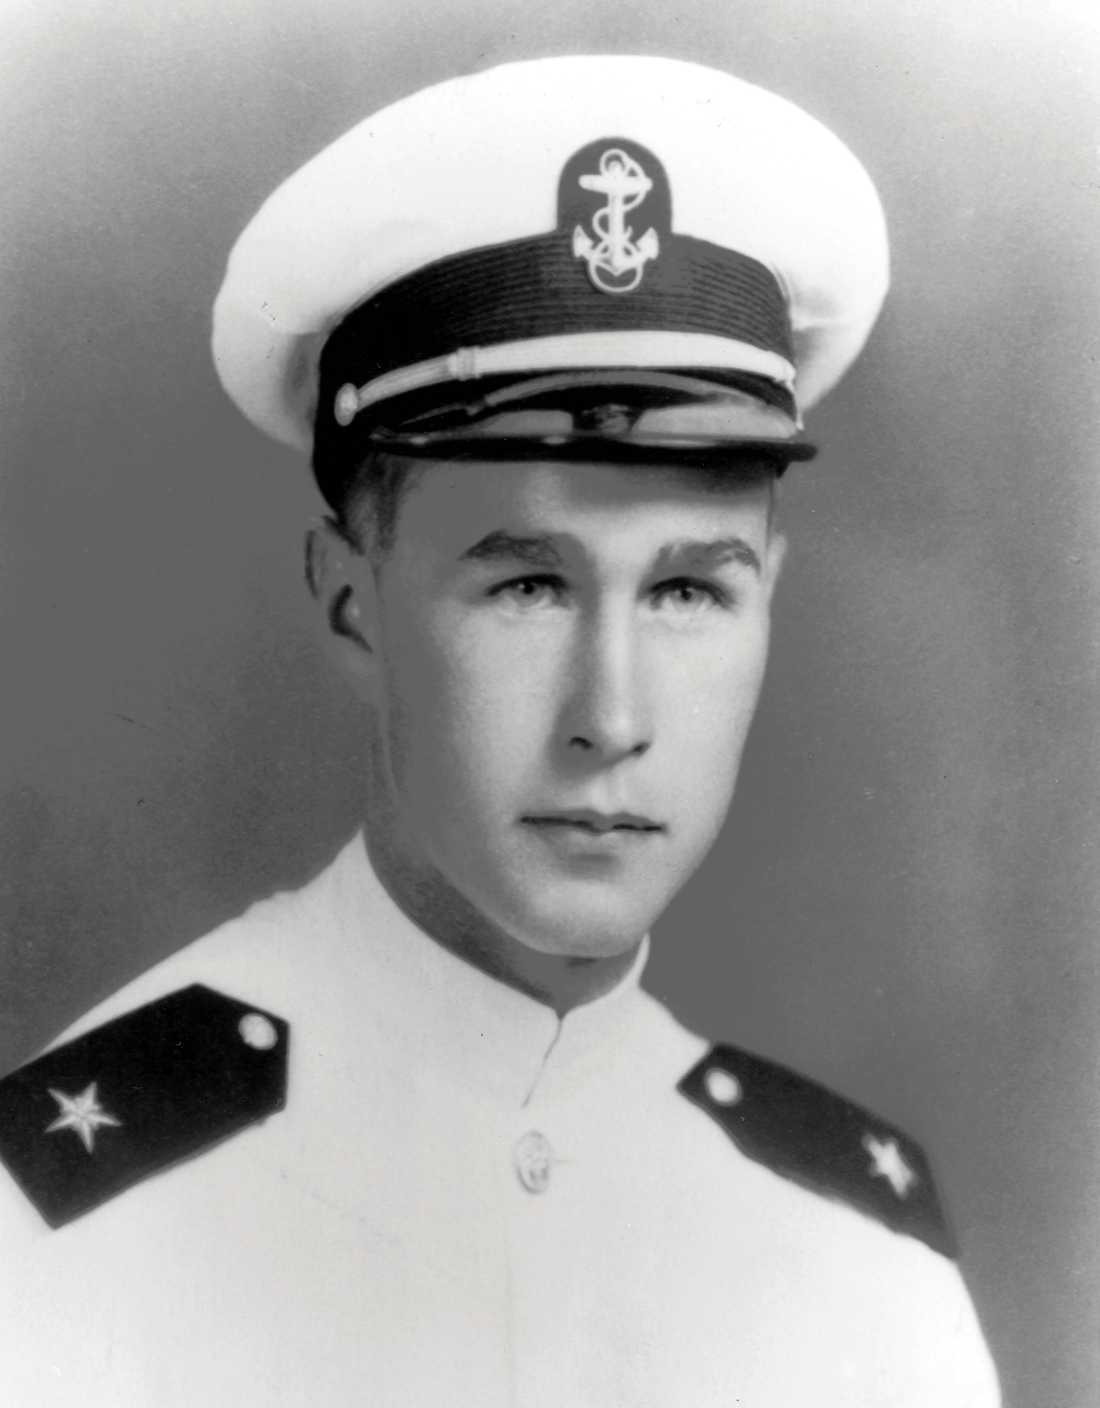 George H. W. Bush, in uniform as a Naval Aviator Cadet, is pictured in this early 1943